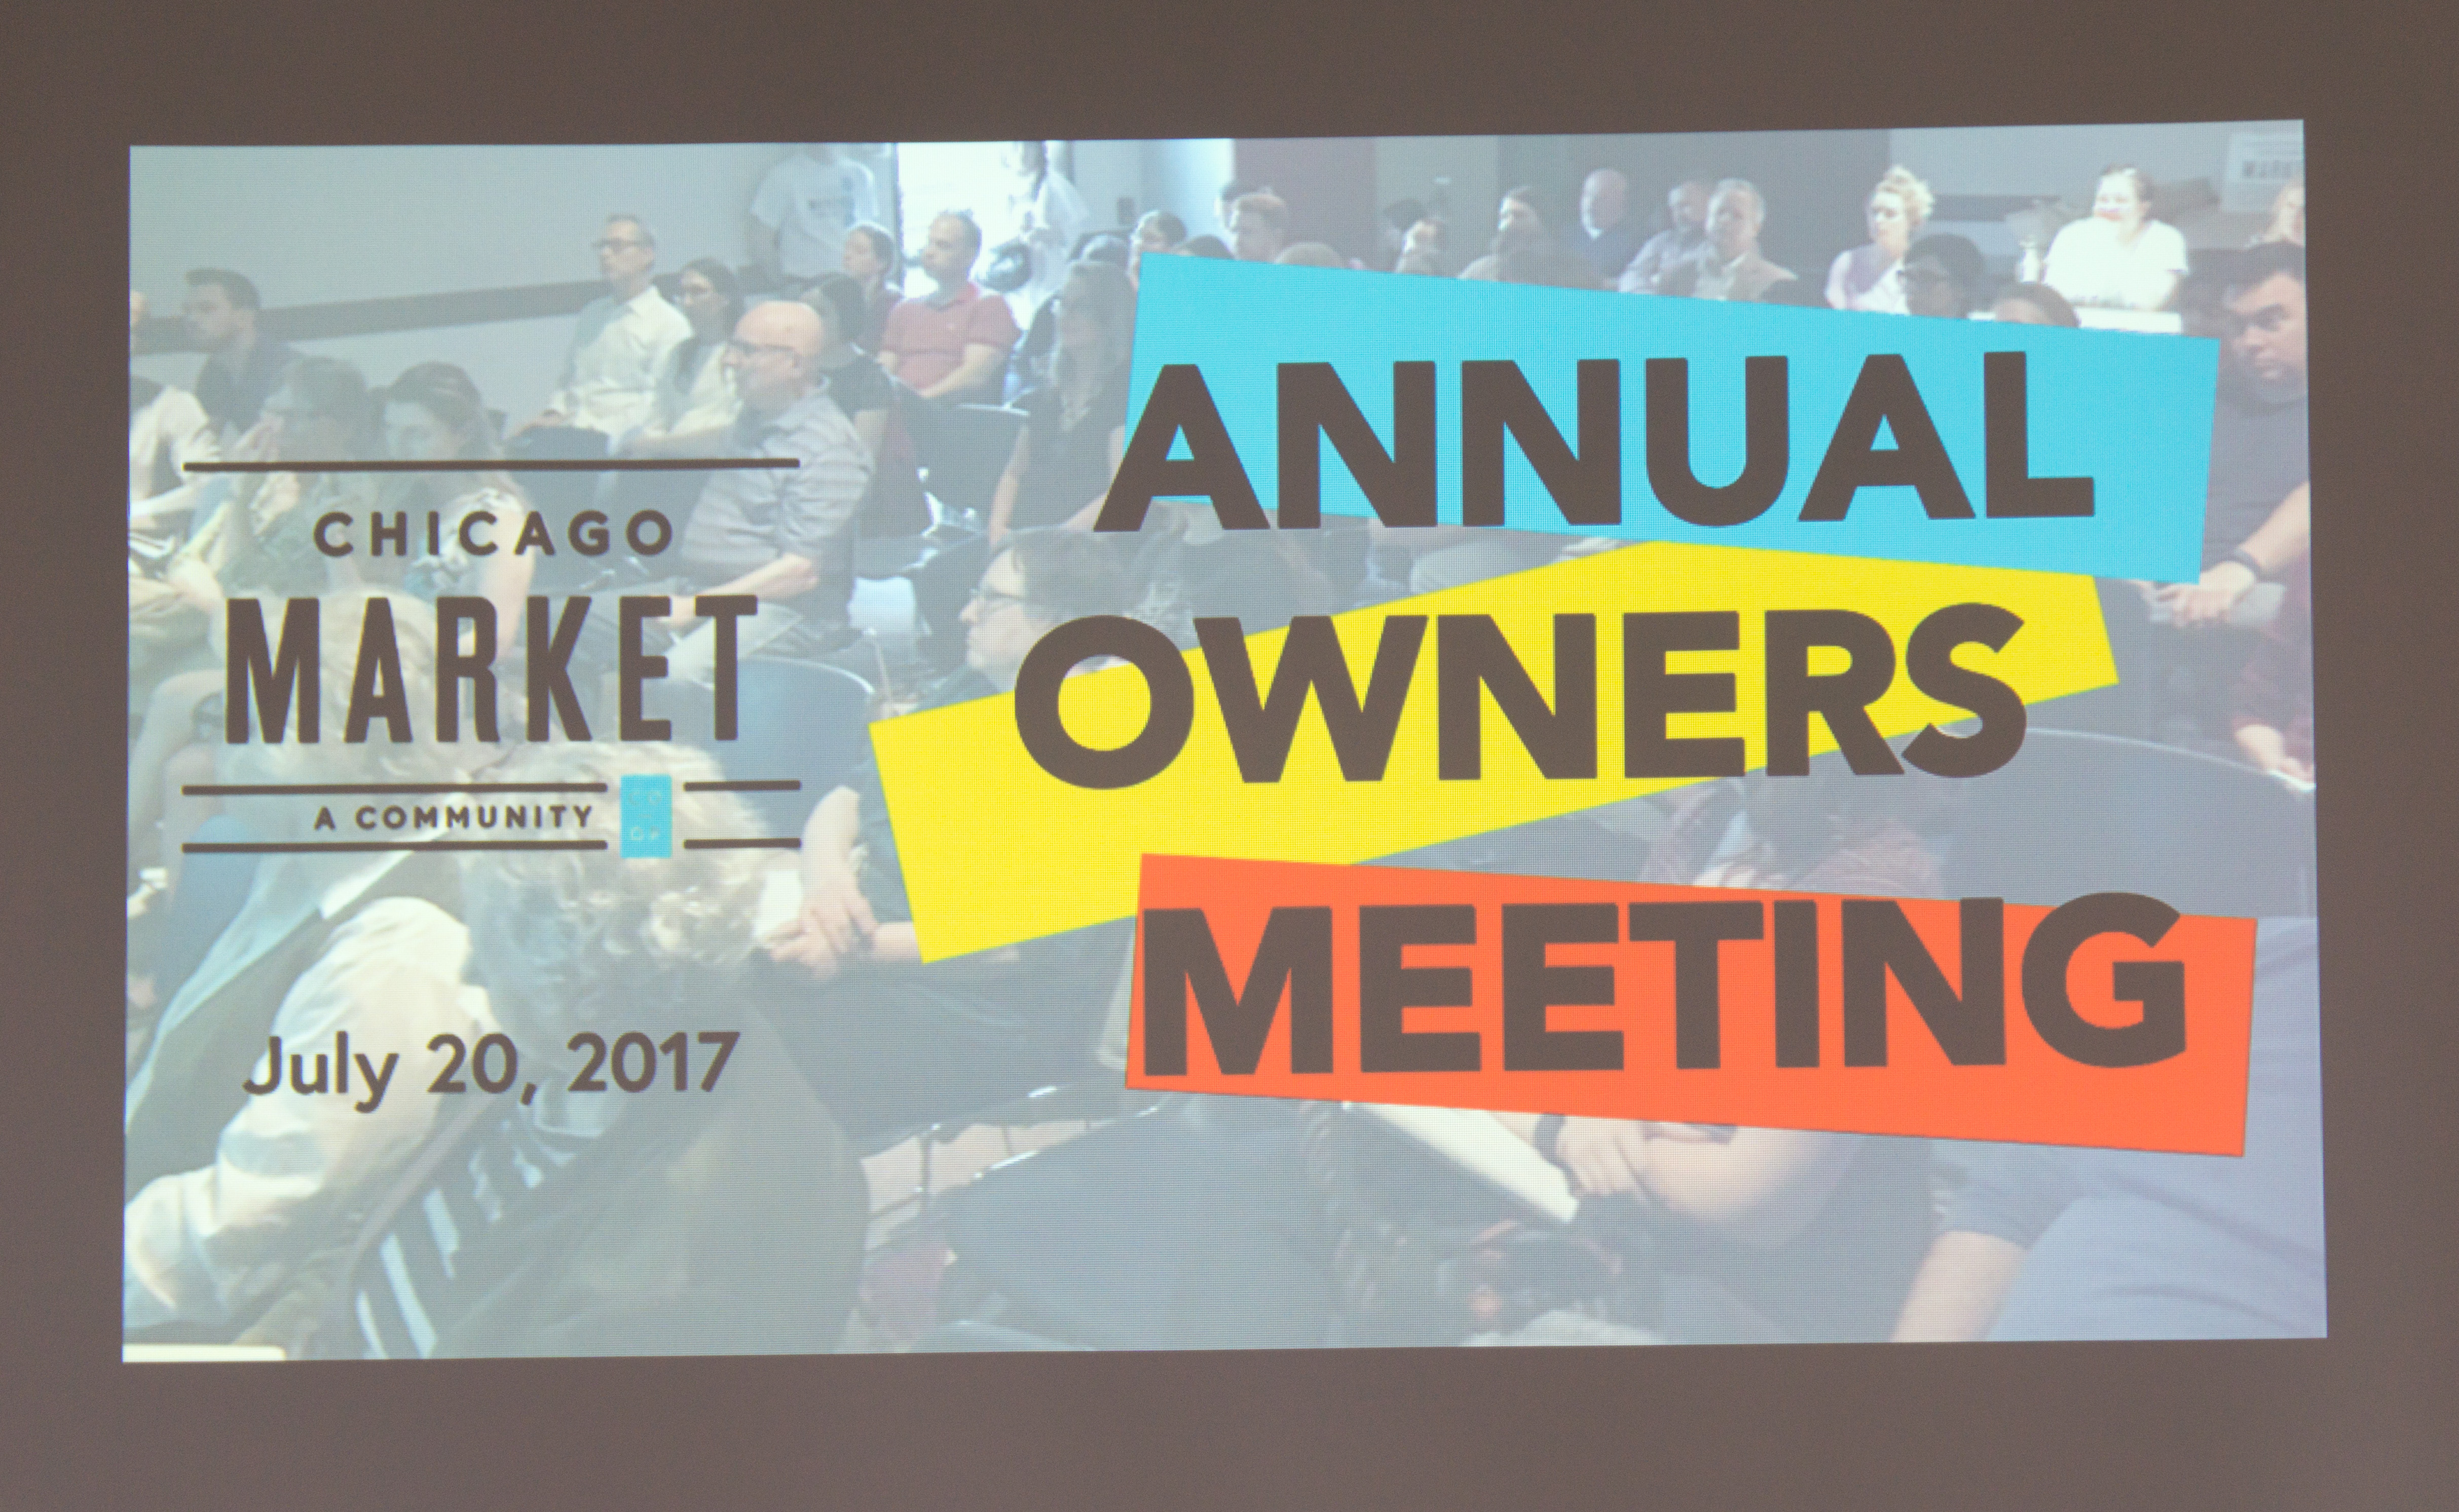 Annual Owners Meeting 2017